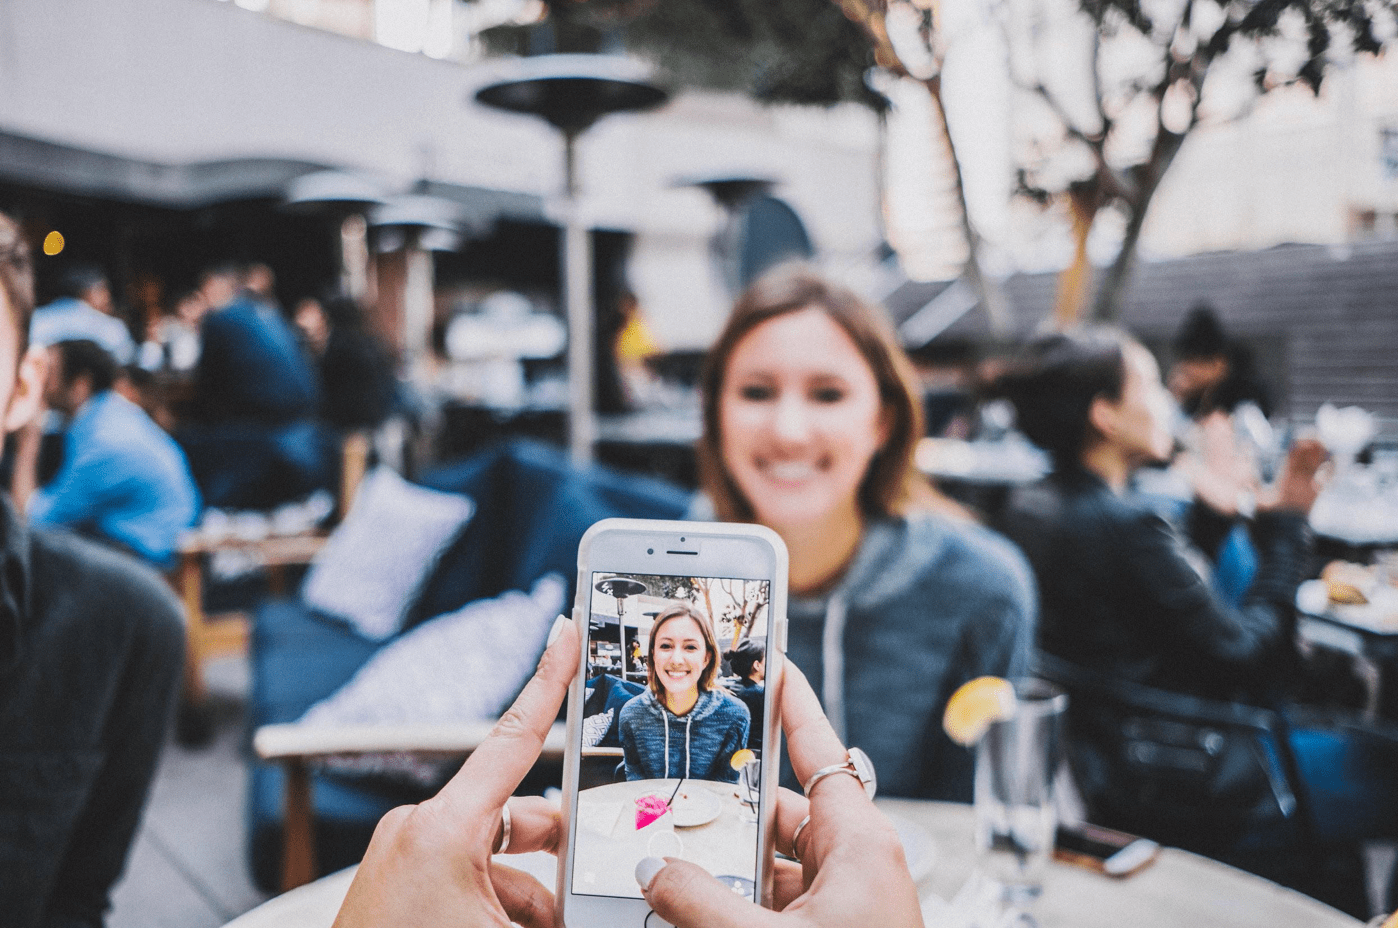 Person taking smartphone picture of young woman seated across the table from them; image via Unsplash.com.